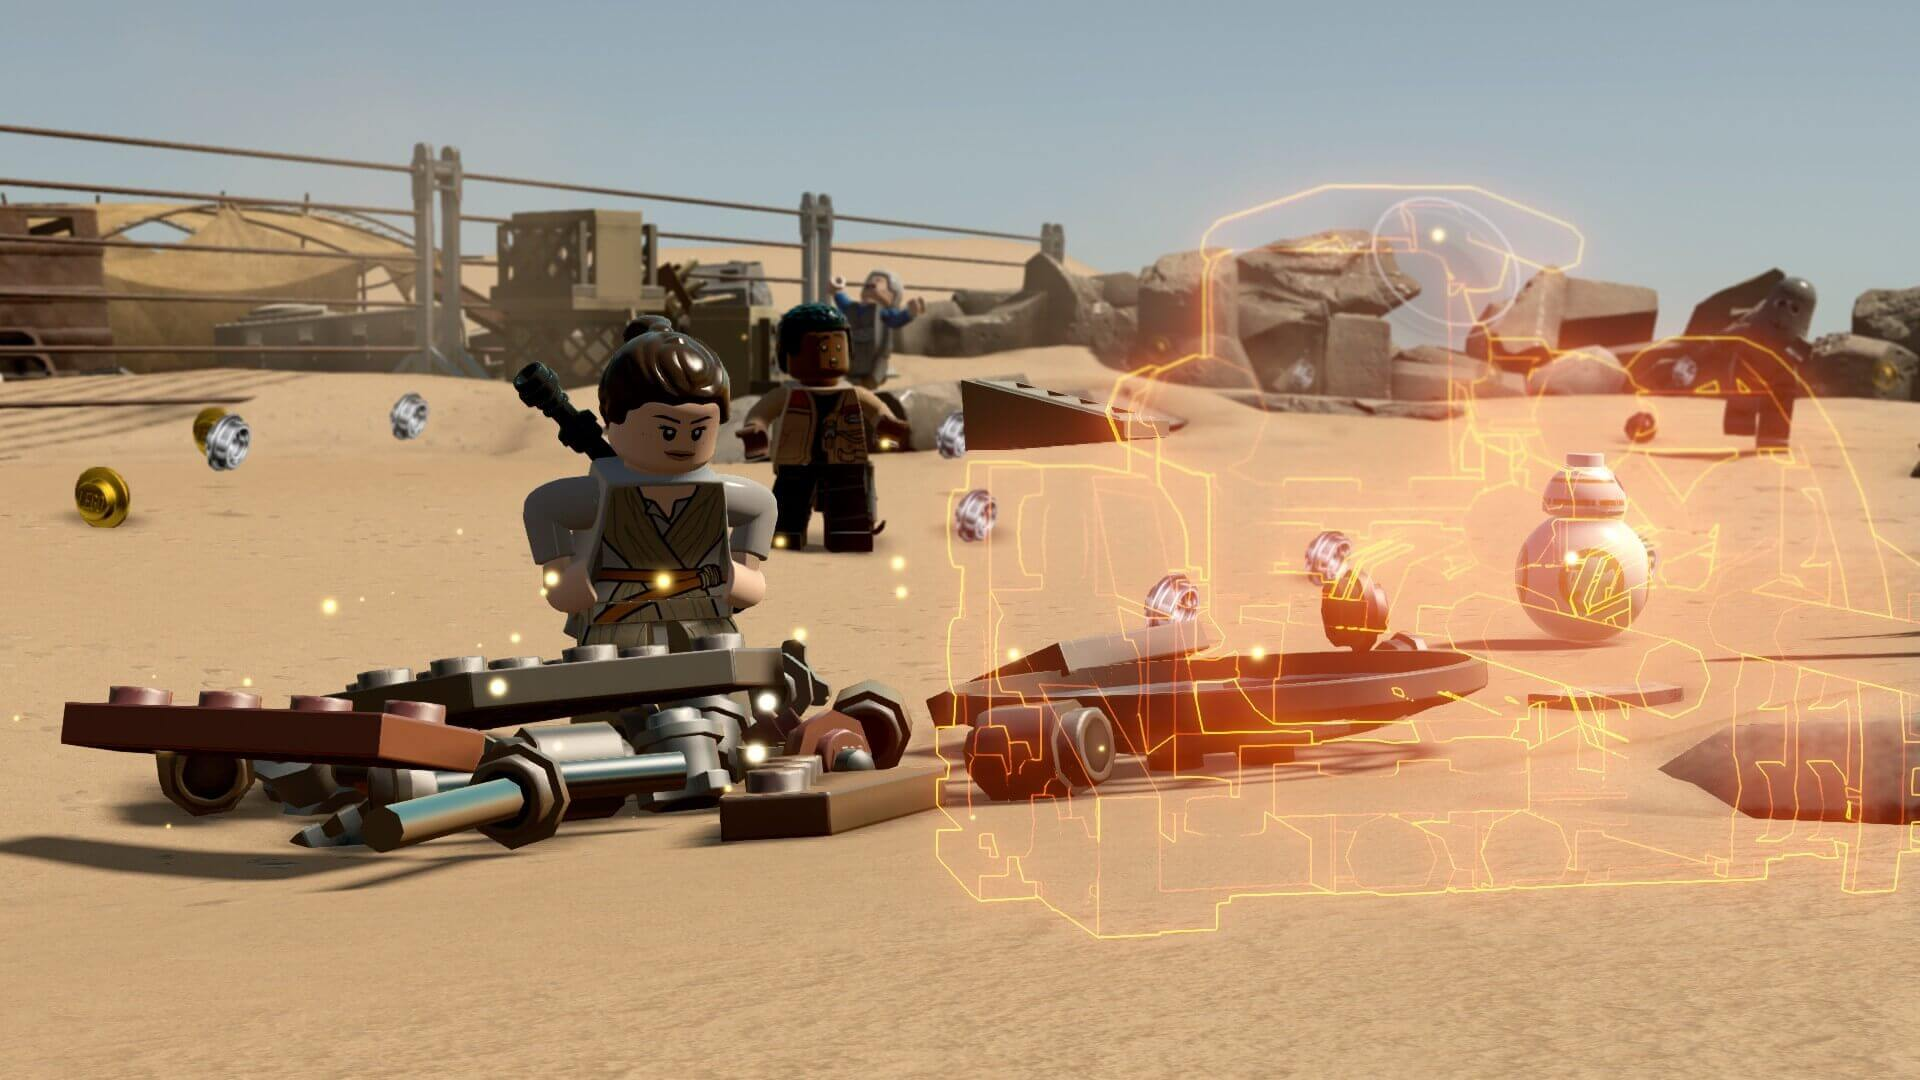 LEGO Star Wars: The Force Awakens X360